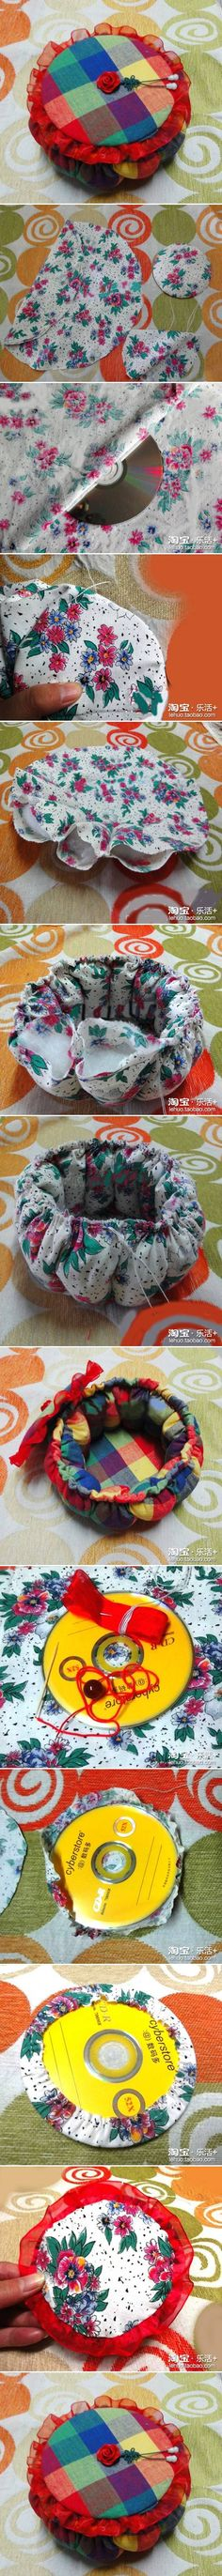 DIY Old CD Pumpkin Box DIY Projects | UsefulDIY.com Follow Us on Facebook ==> http://www.facebook.com/UsefulDiy